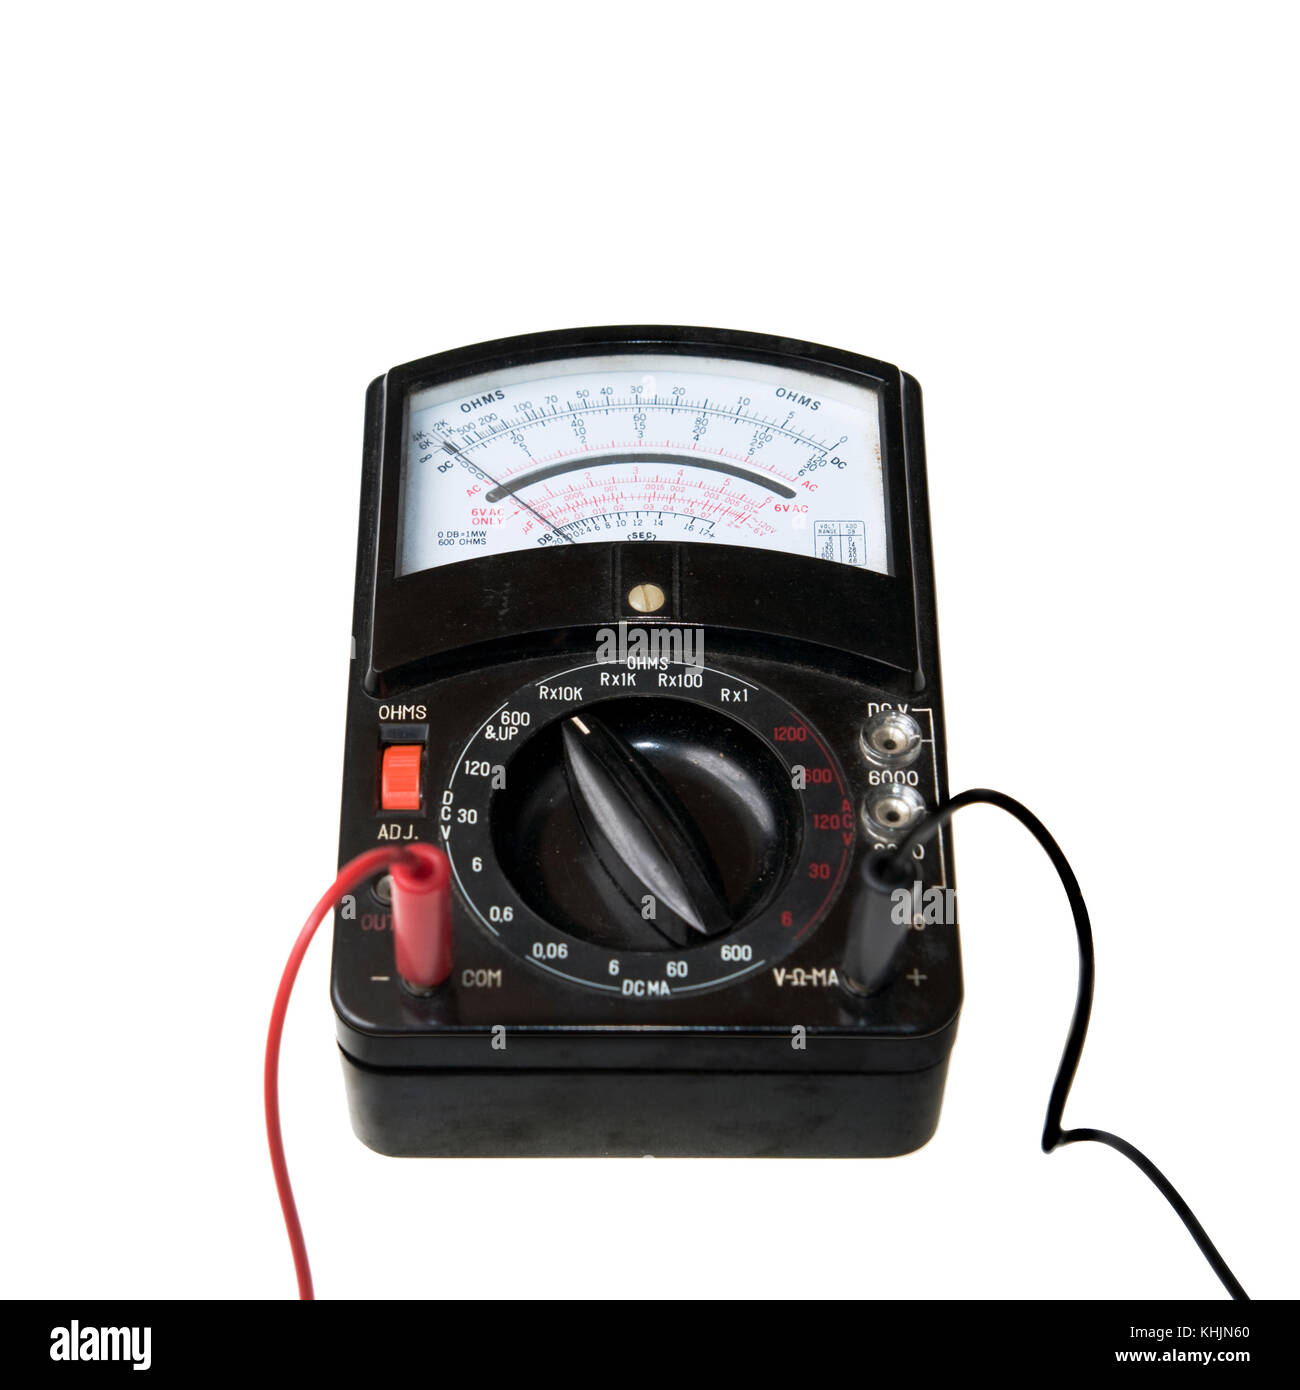 Analog multimeter being used as a voltmeter - Stock Image